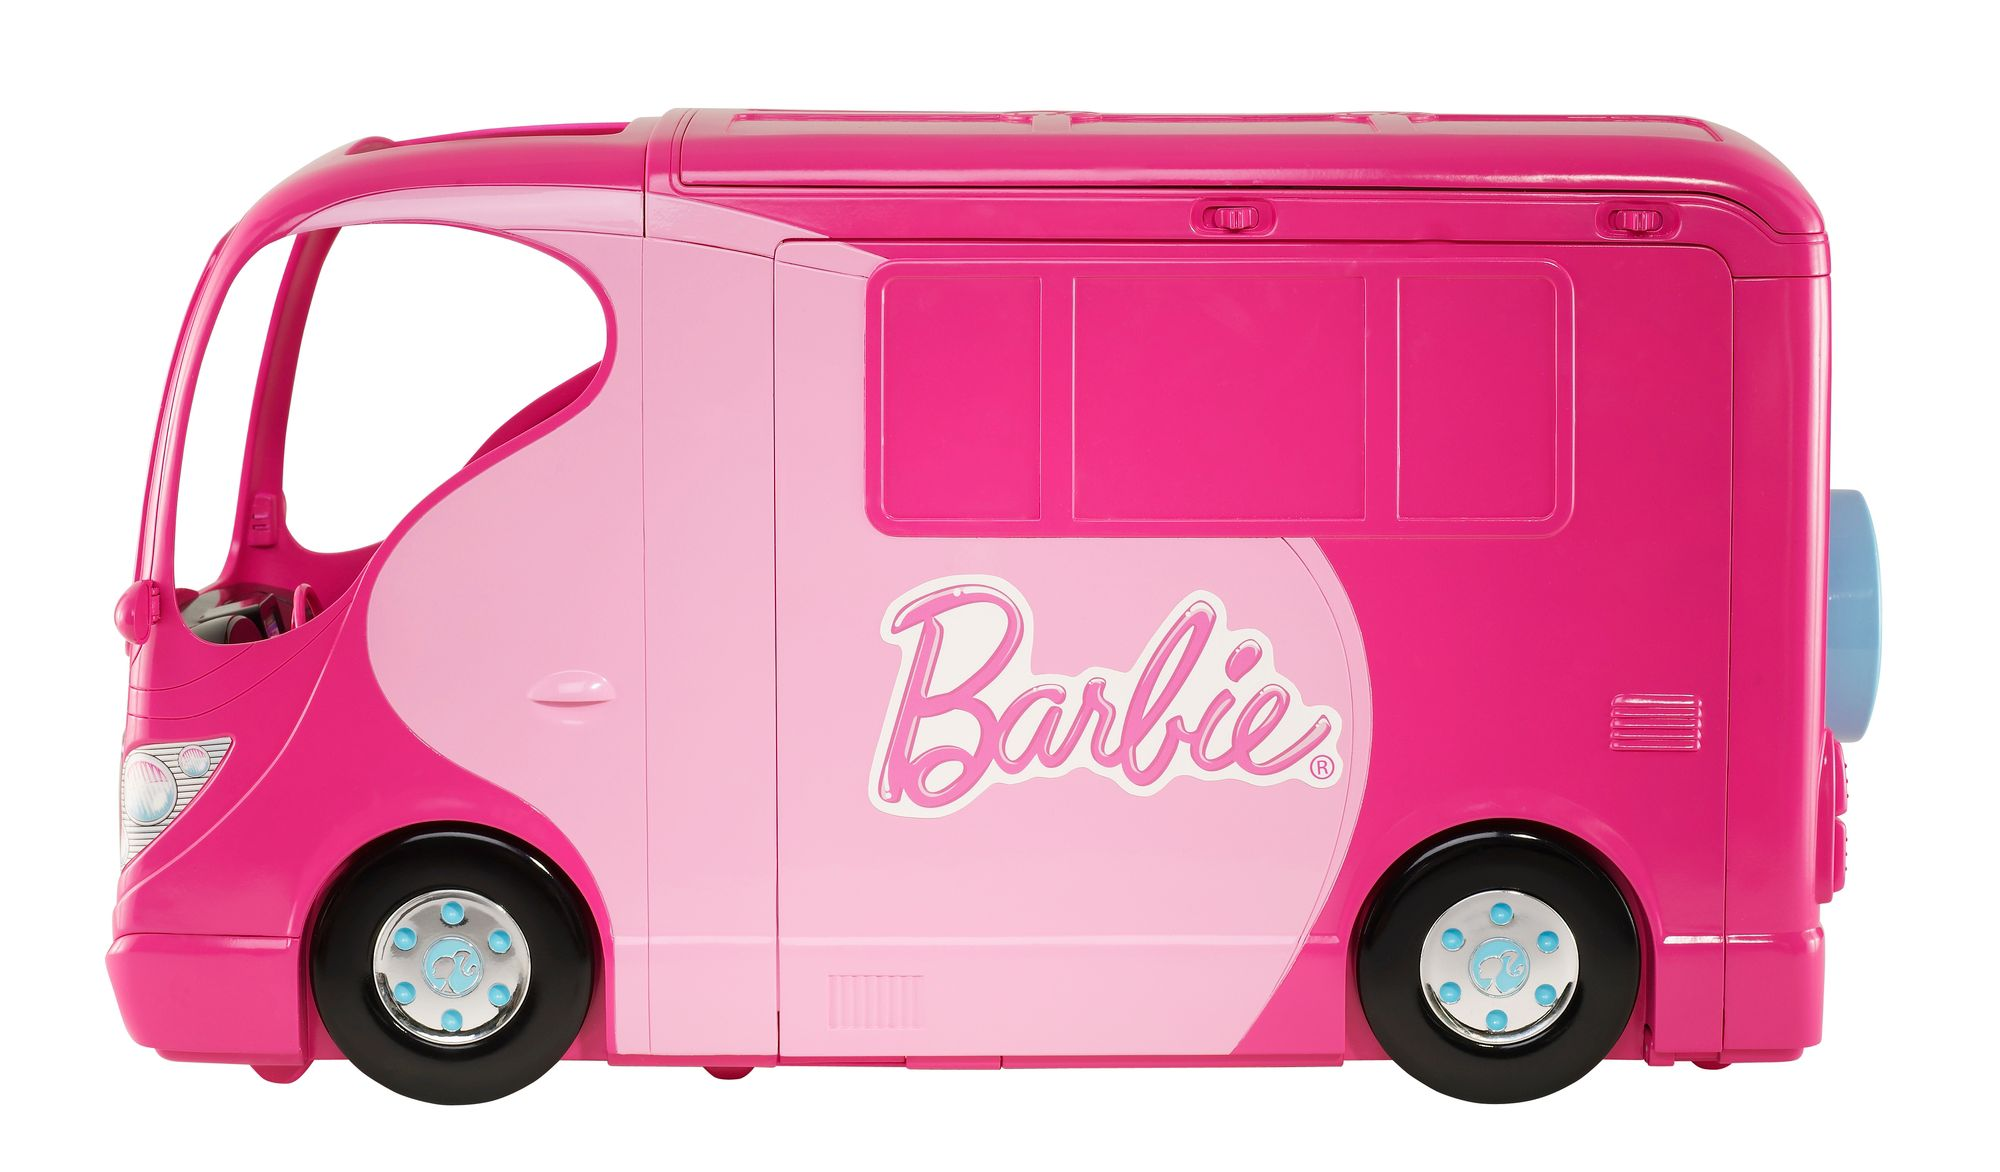 Barbie Sister RV Camper